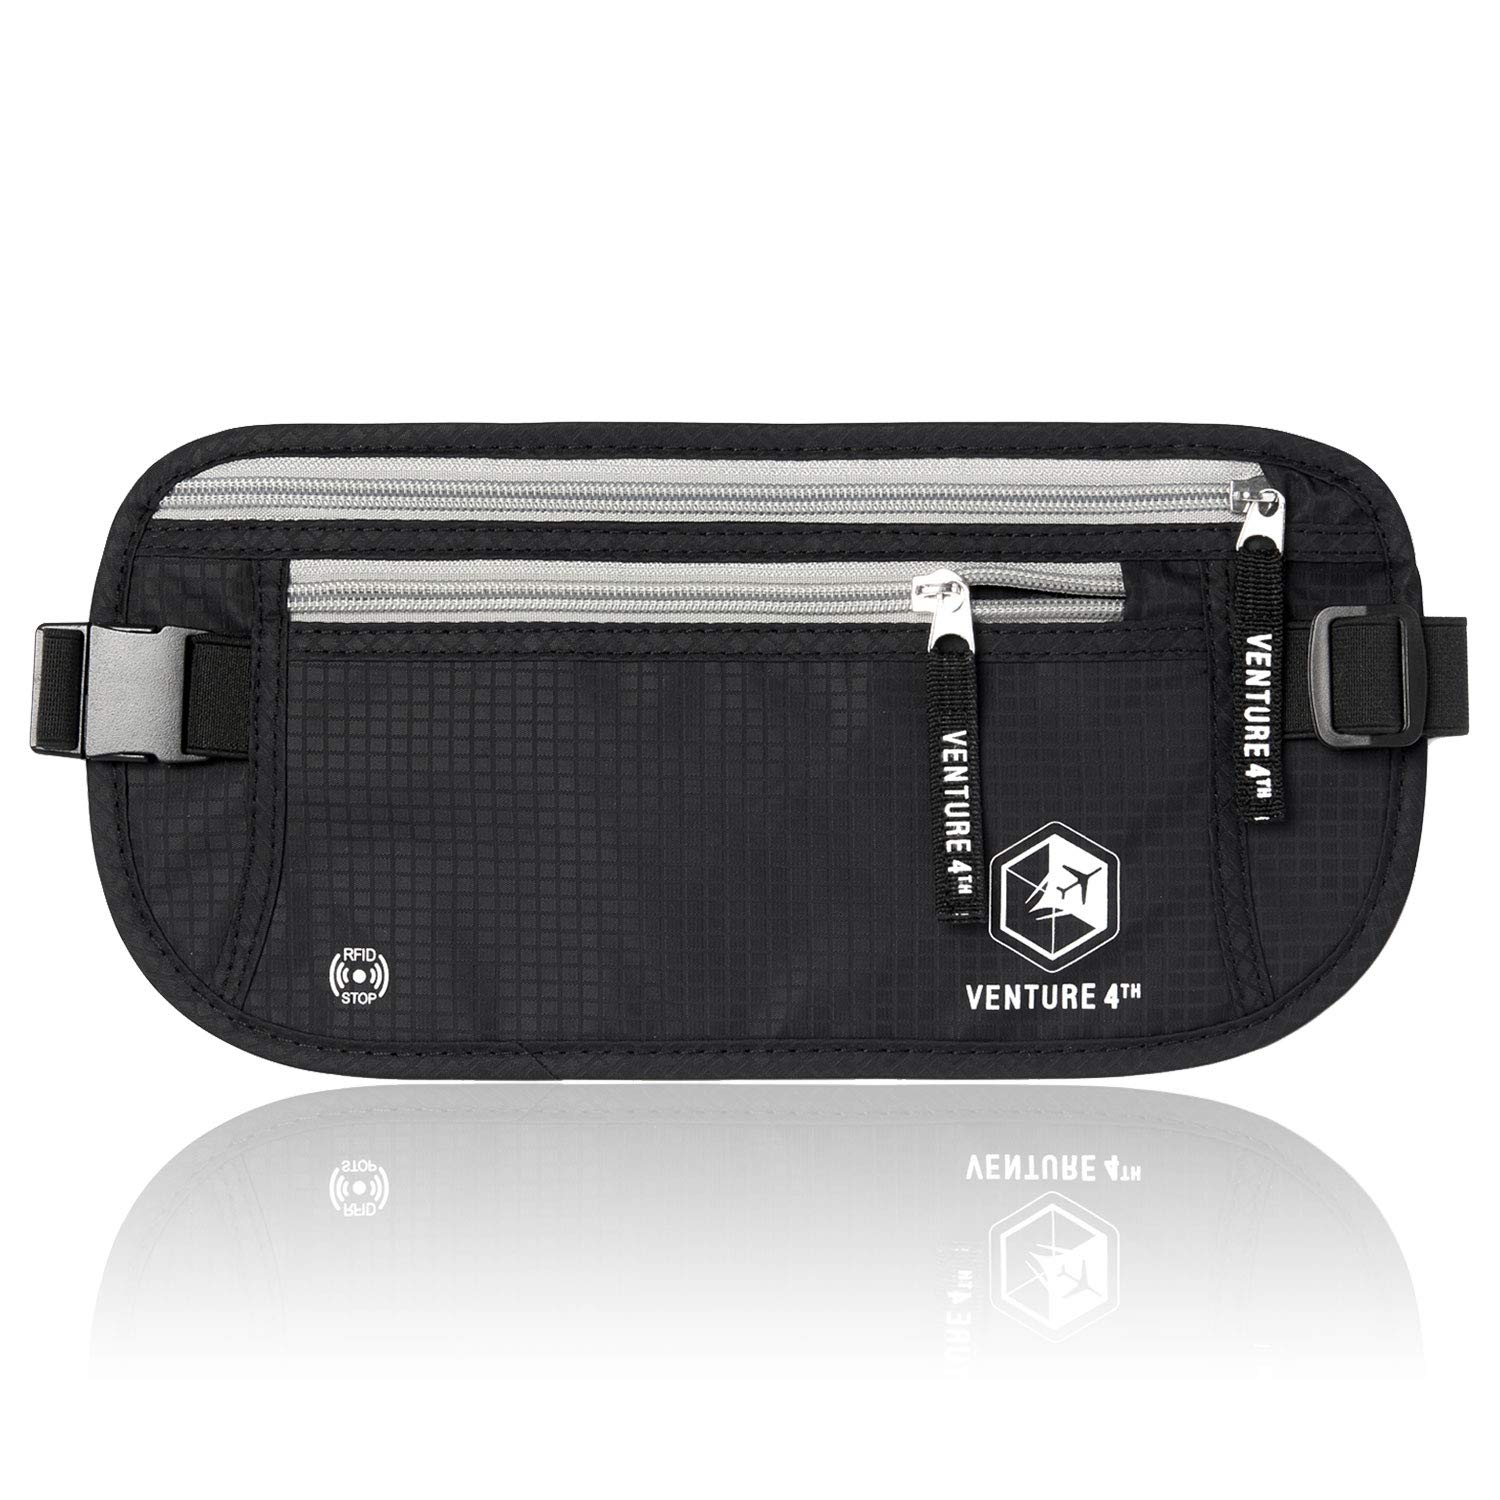 VENTURE 4TH RFID Money Belt Protect Yourself From Travel Theft Comfortable Durable and Lightweight (Black) by VENTURE 4TH